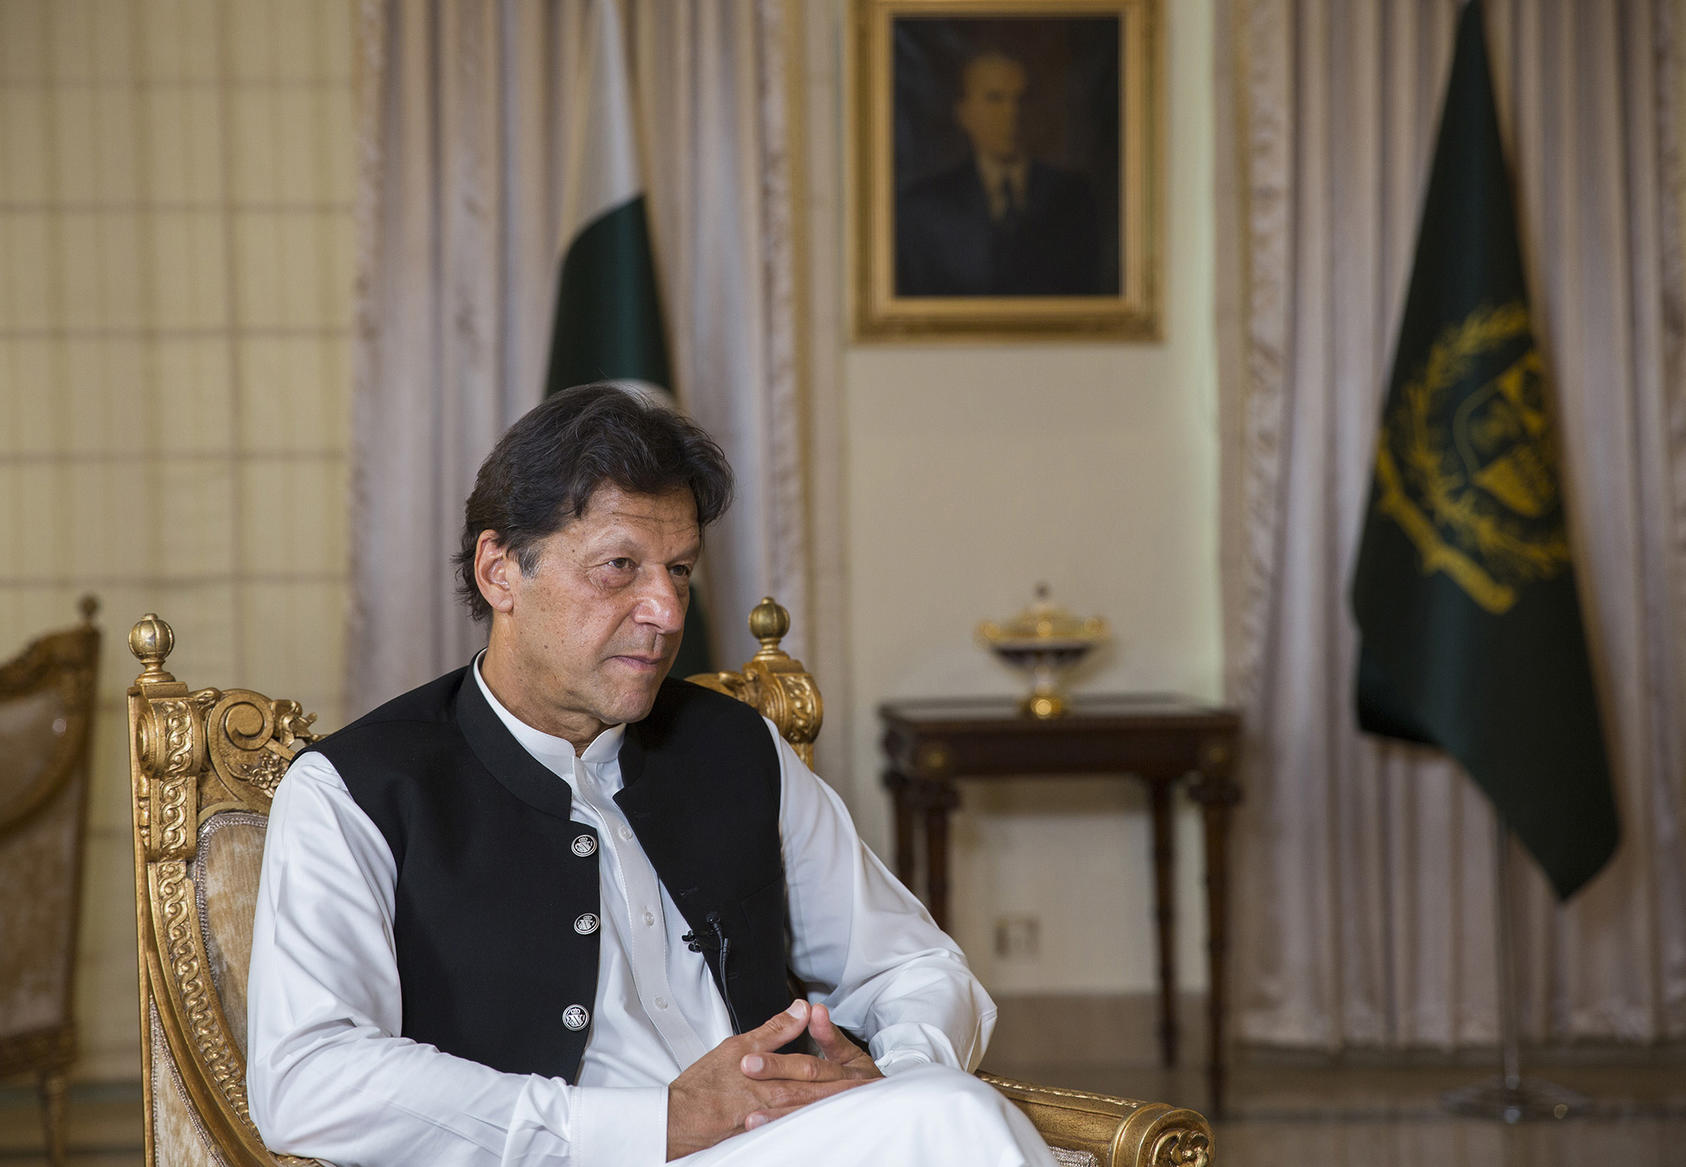 Prime Minister Imran Khan of Pakistan at his residence in Islamabad, Pakistan, April 9, 2019. (Saiyna Bashir/The New York Times)